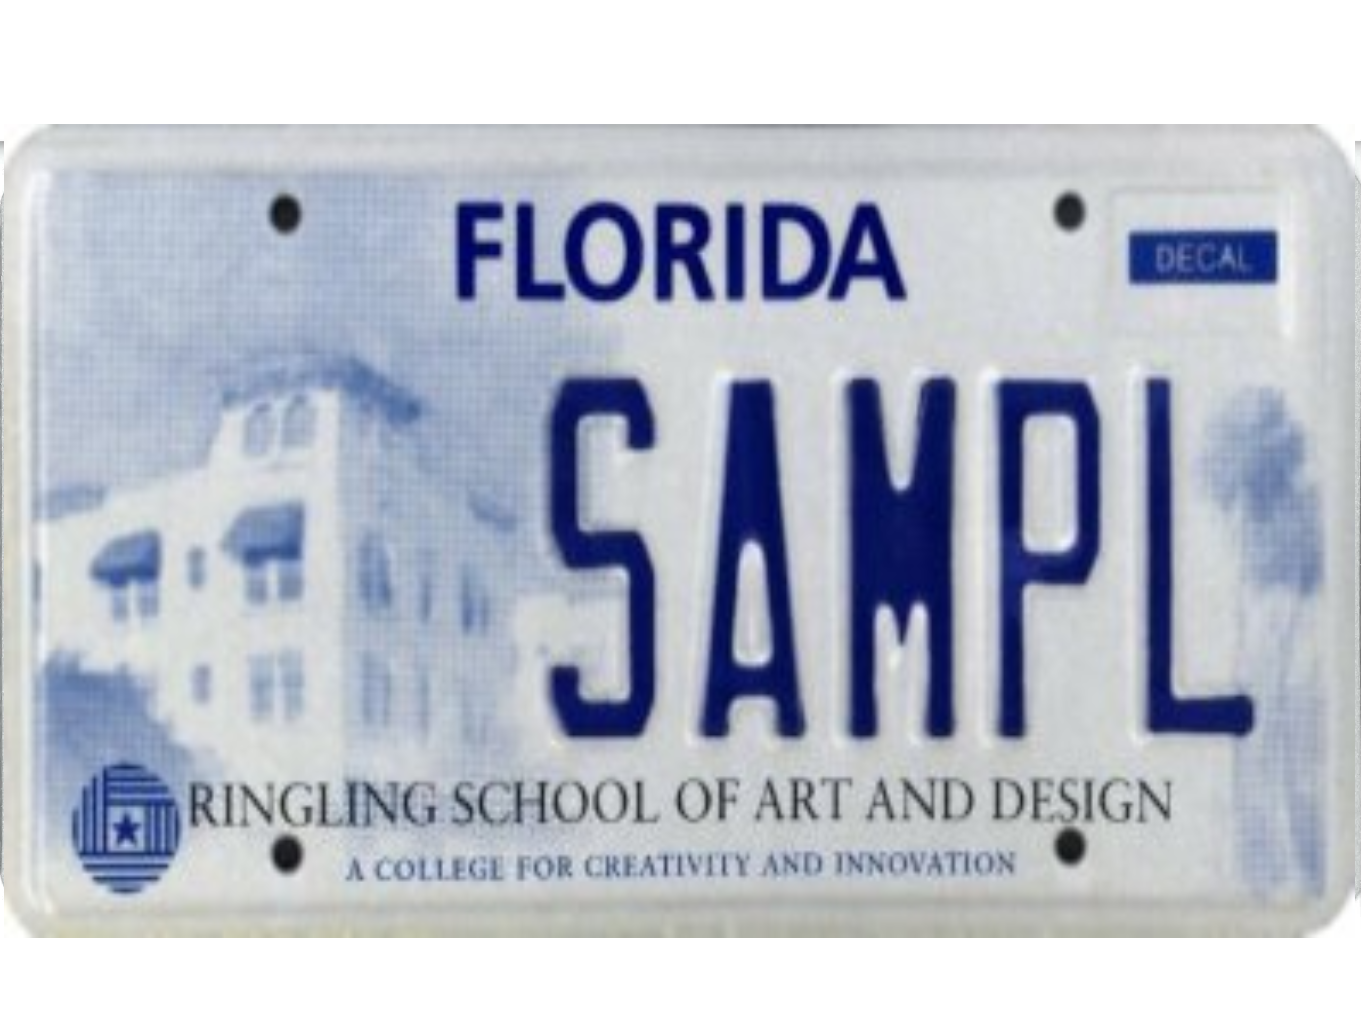 The Ringling School of Art and Design license plate.